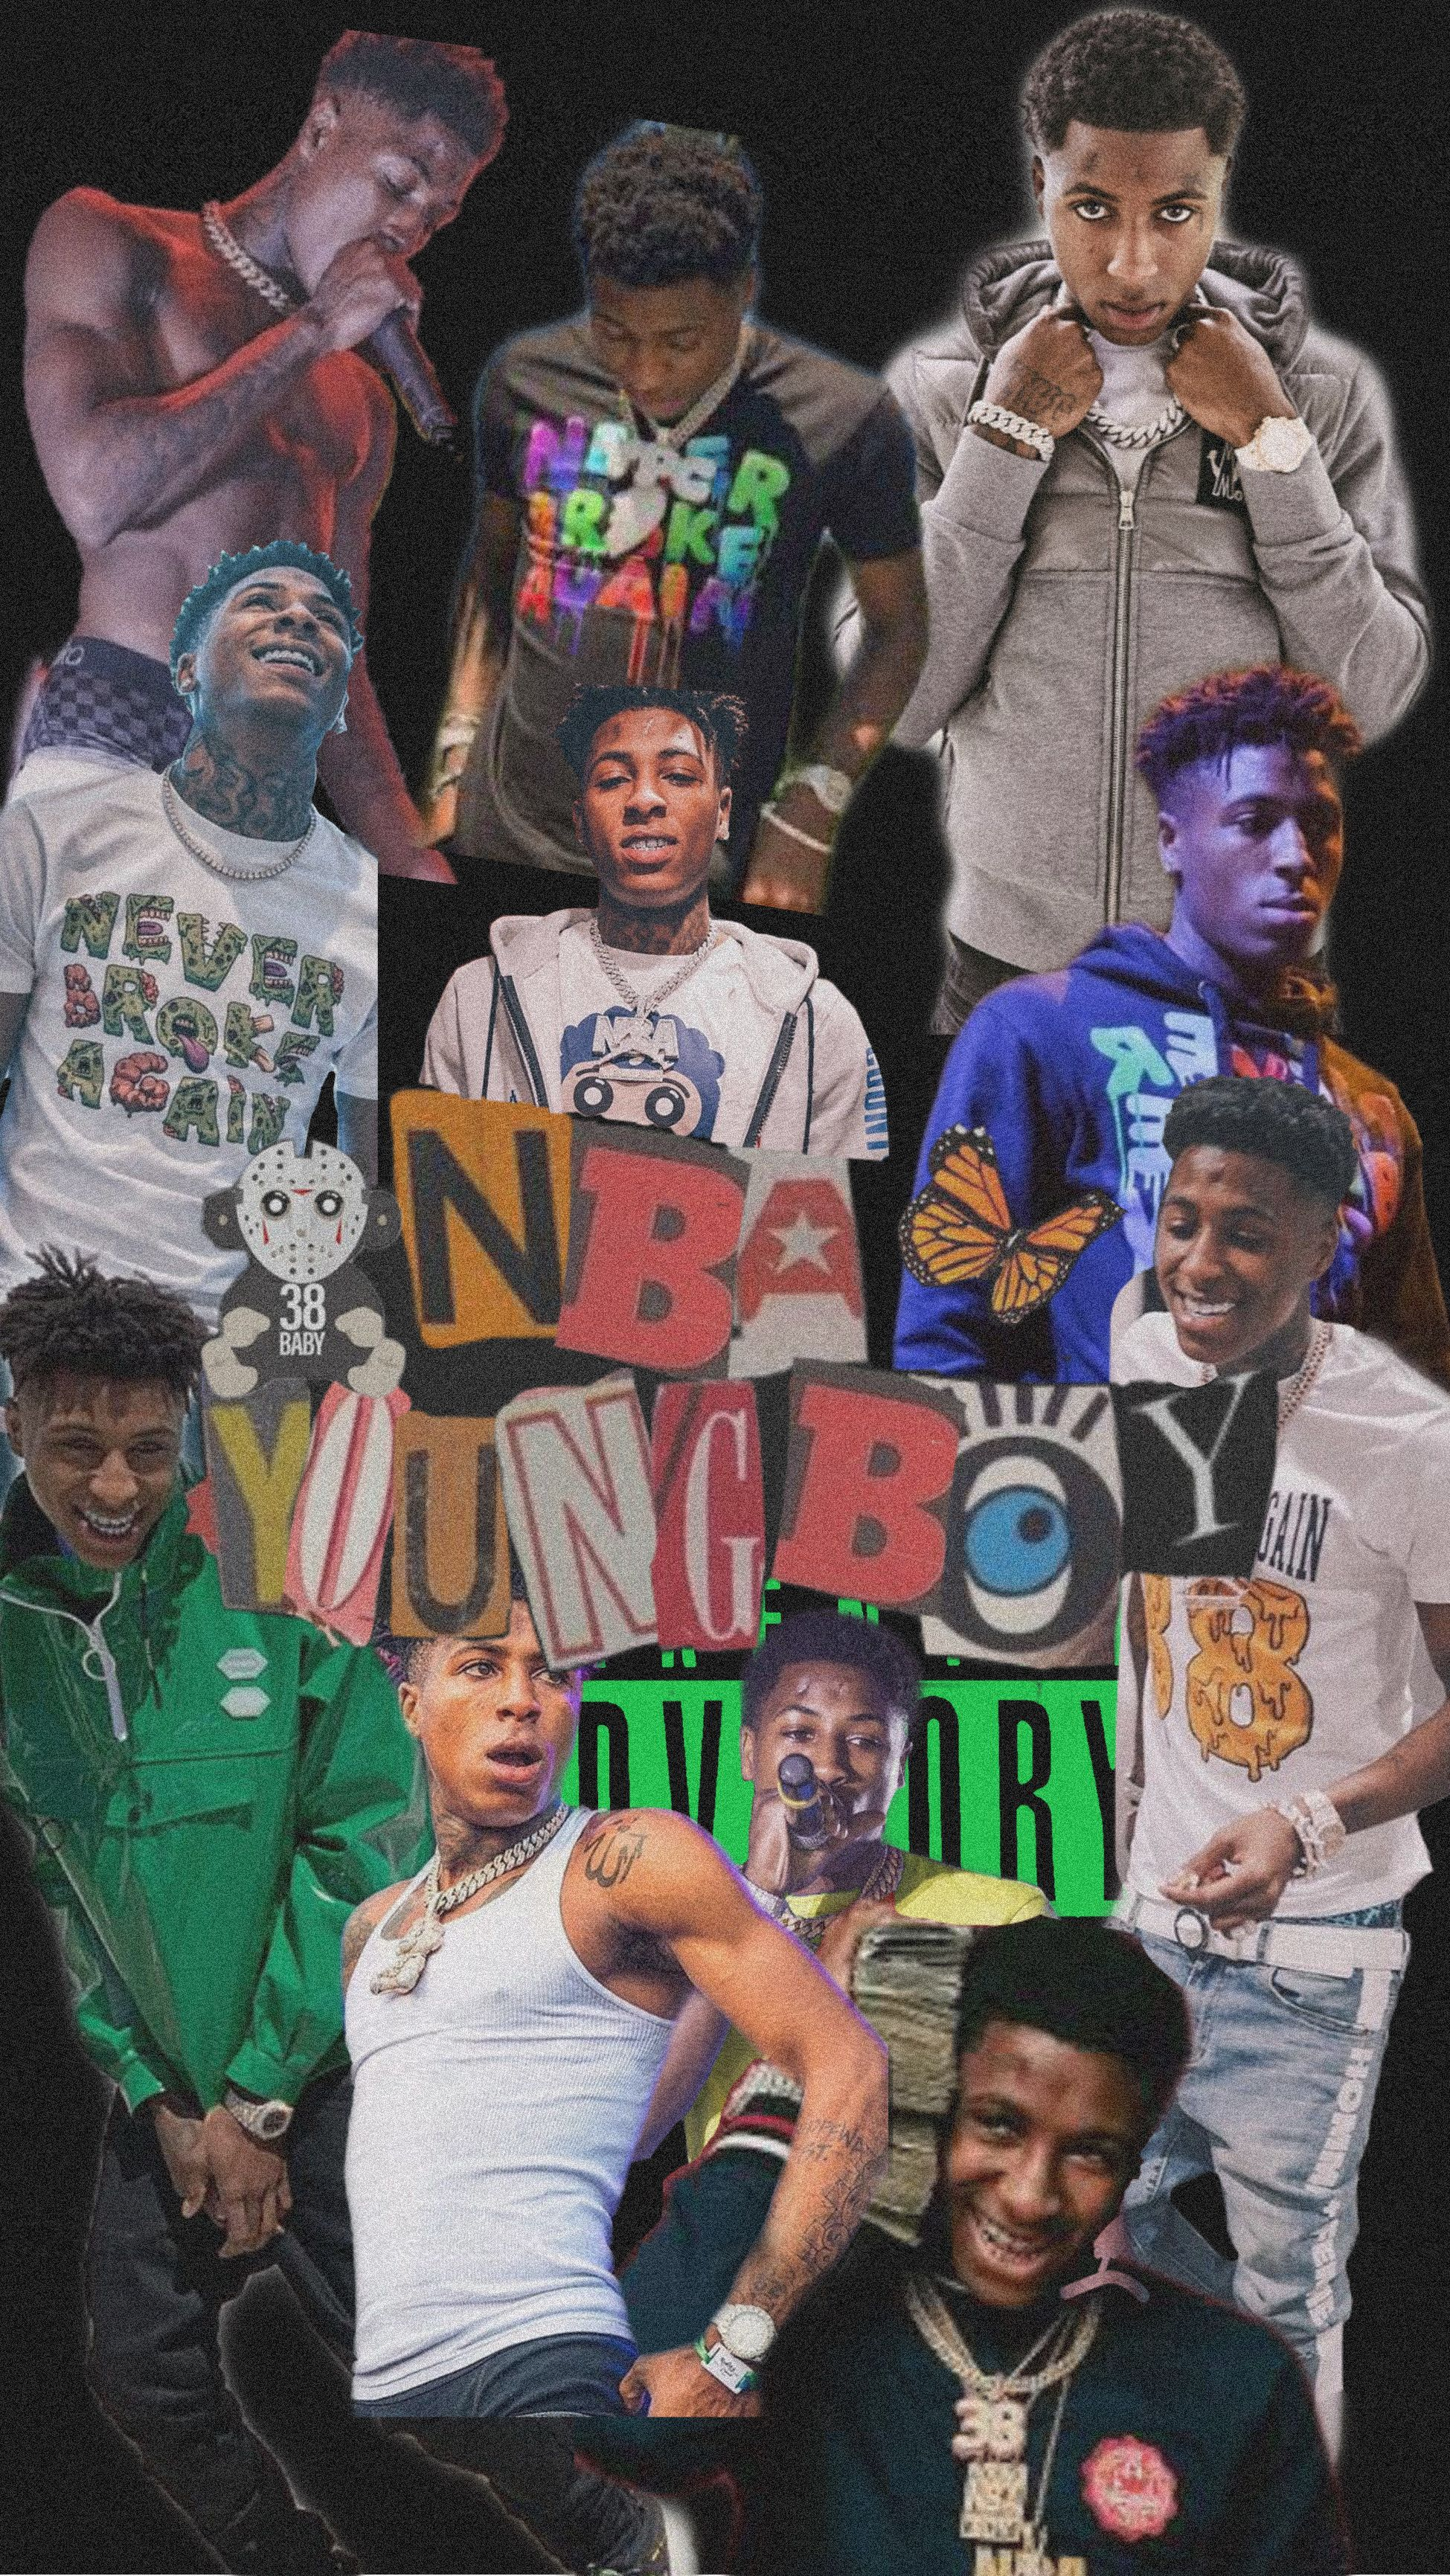 Nba Youngboy In 2020 Rapper Wallpaper Iphone Badass Wallpaper Iphone Cartoon Wallpaper Iphone